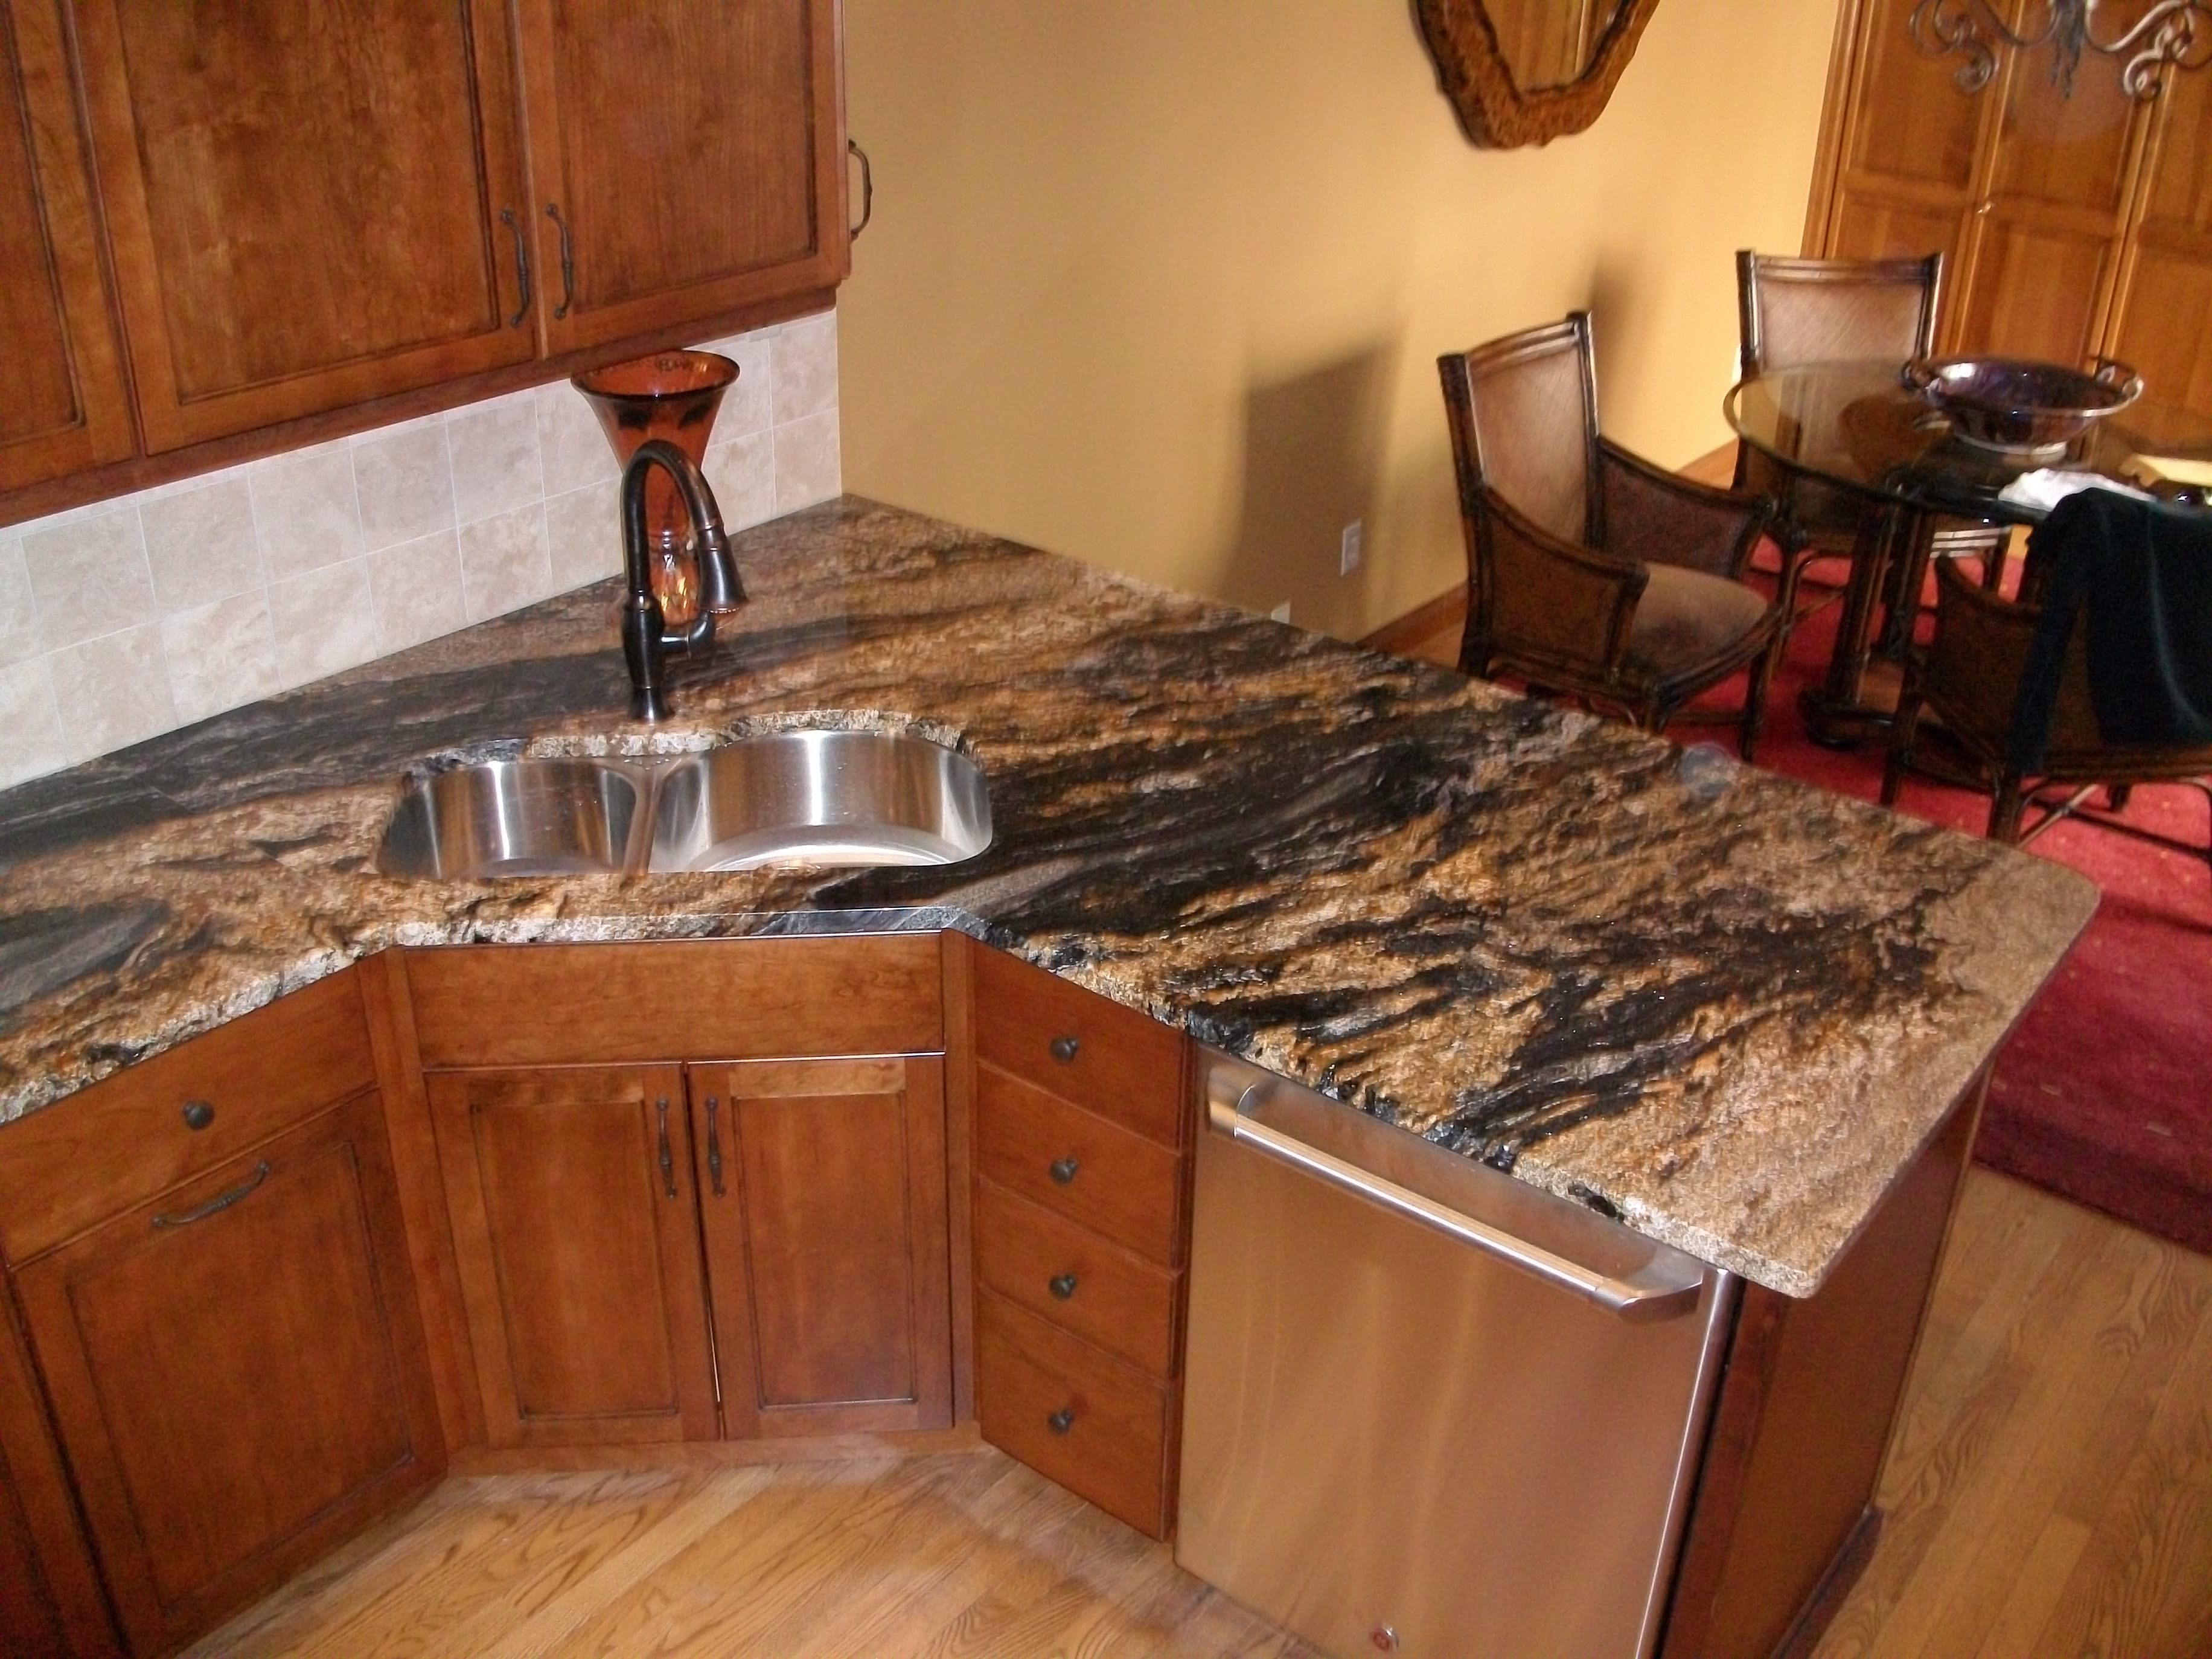 Corner Kitchen Sink With Stacked Stone And Granite Counter Tops Kitchen Ideas And Designs Kitc Inexpensive Countertops Cheap Countertops Granite Countertops